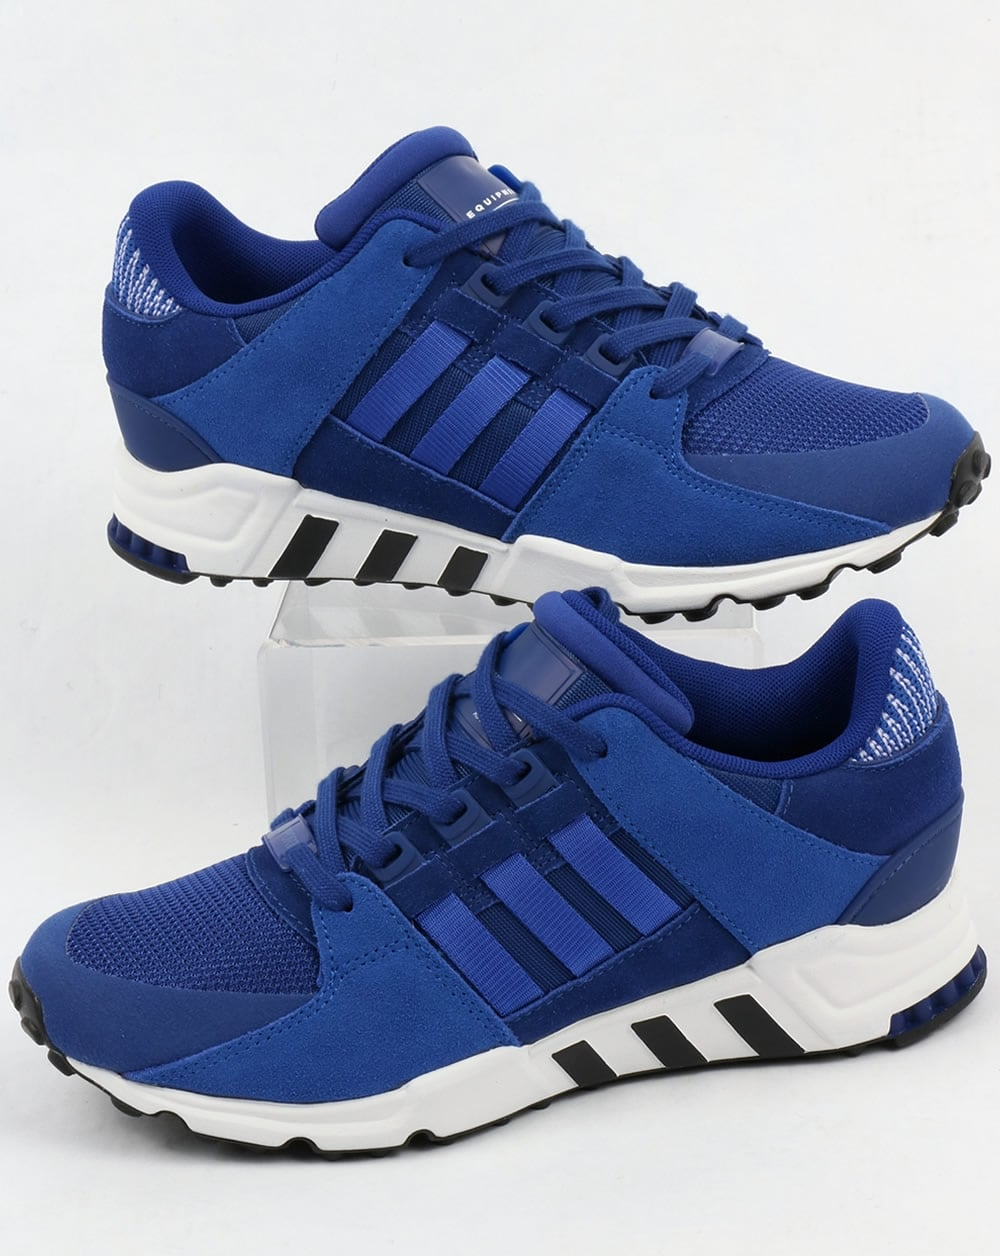 the latest ca8ce 55db0 Adidas EQT Support RF Trainers Mystery Ink/Bold Blue